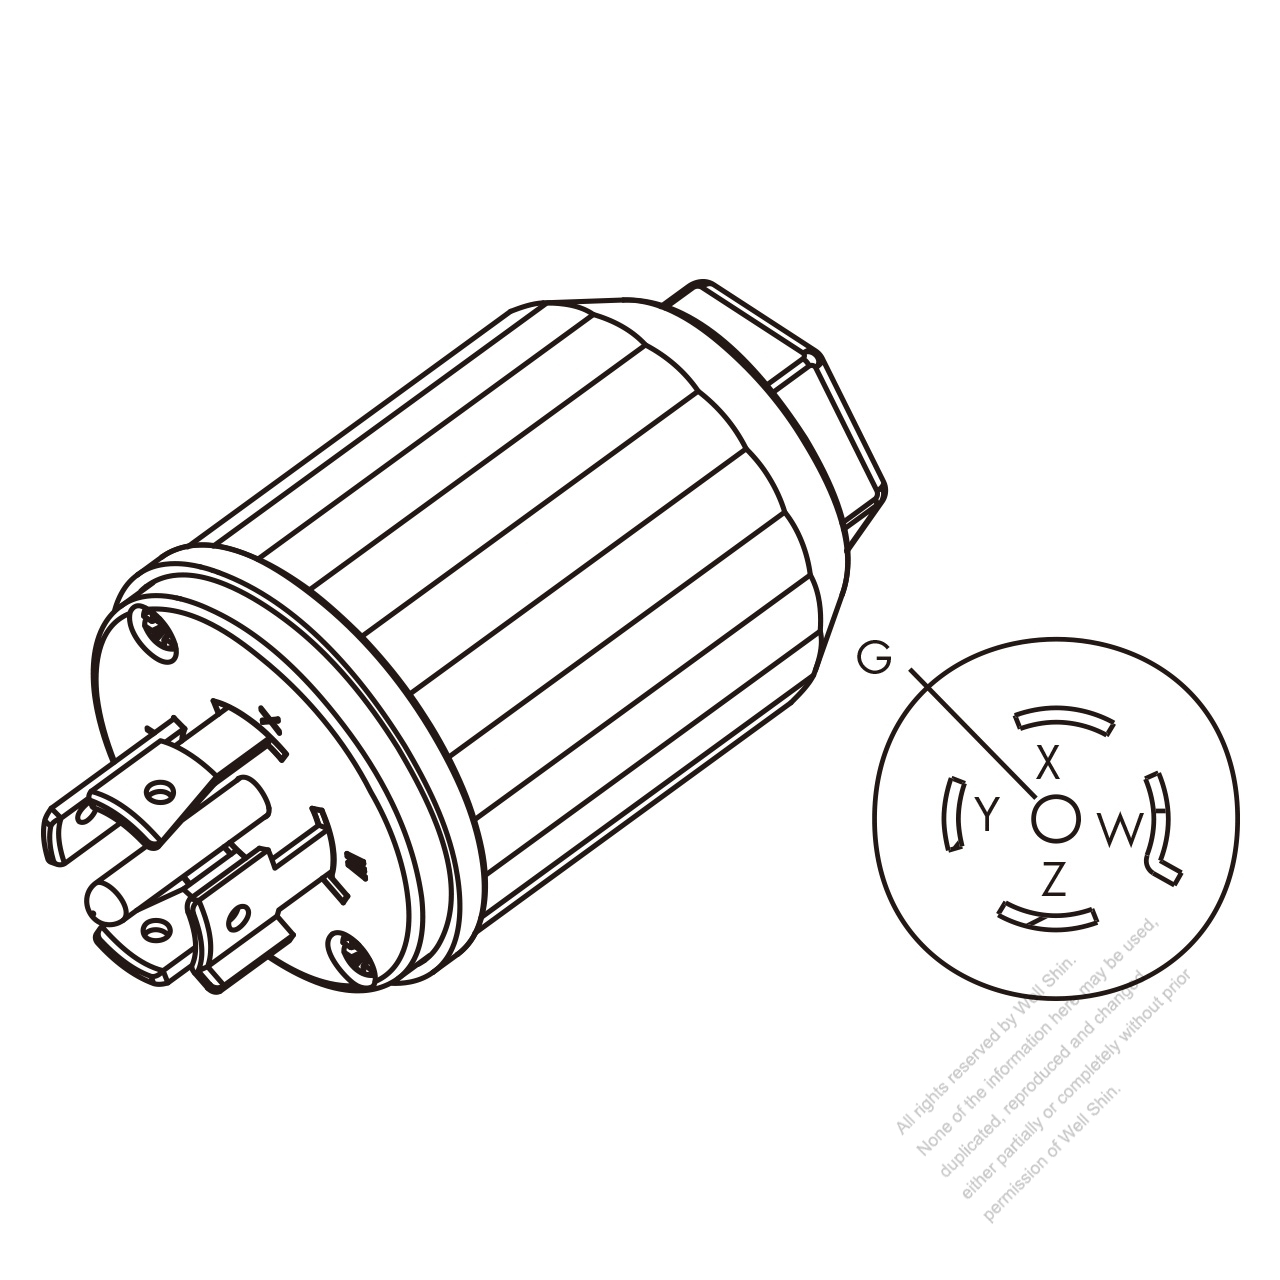 B8656c56ac62ebec083kev usa canada twist lock (nema l21 20p) 5 pin straight plug, 4 p, 5 l21-20r wiring diagram at edmiracle.co